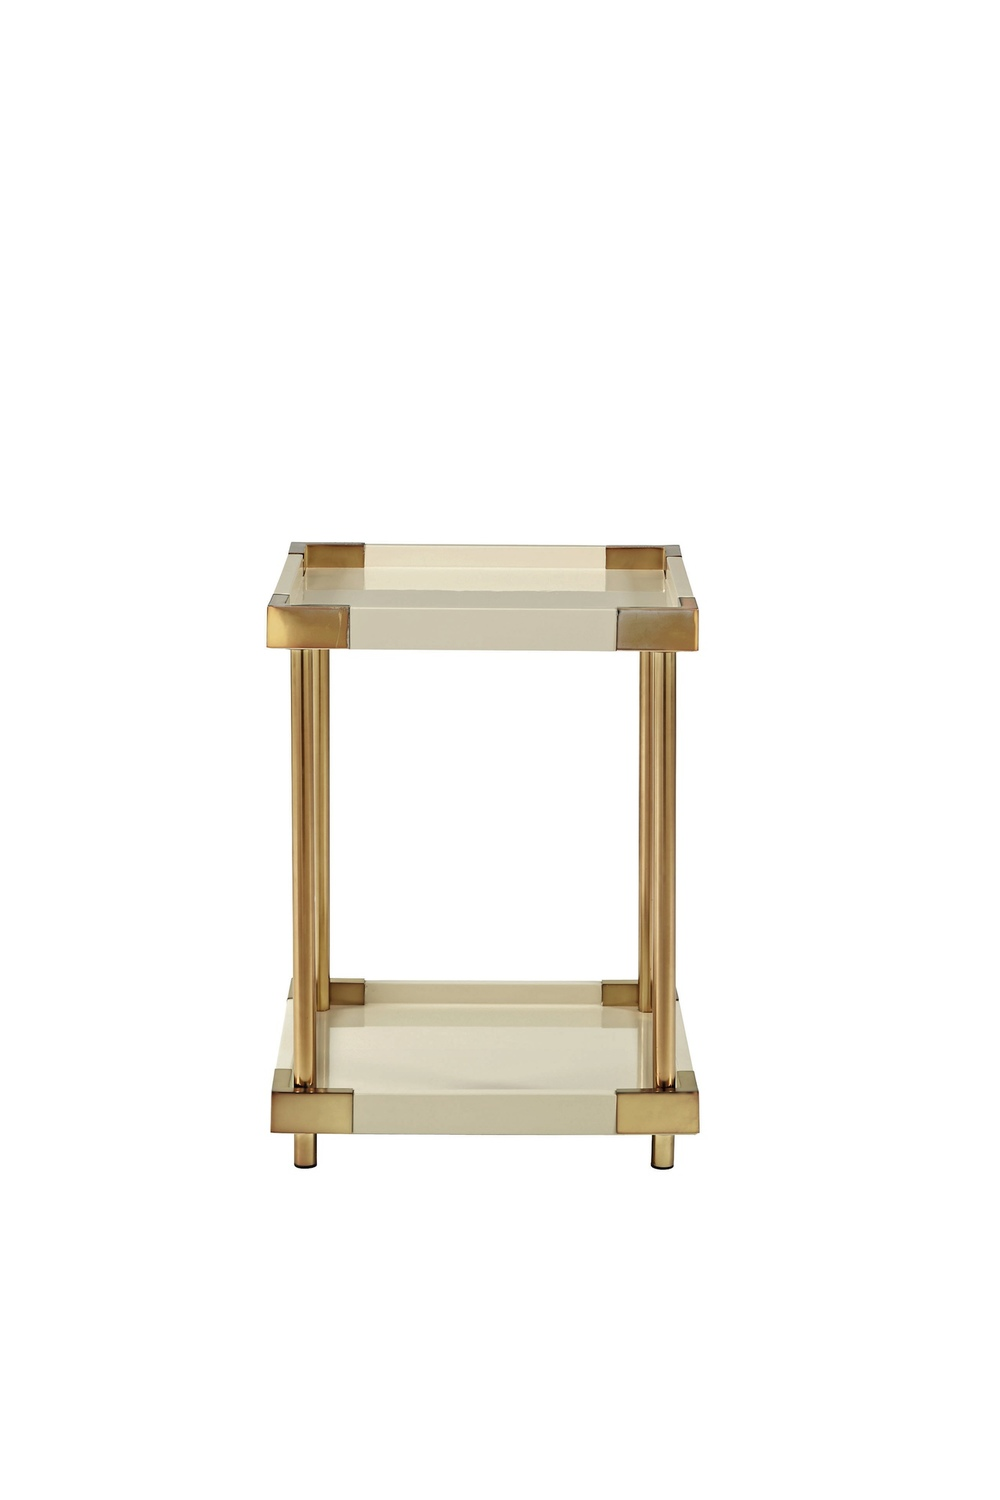 Brass is back rebecca hay interior design for Table 52 2014